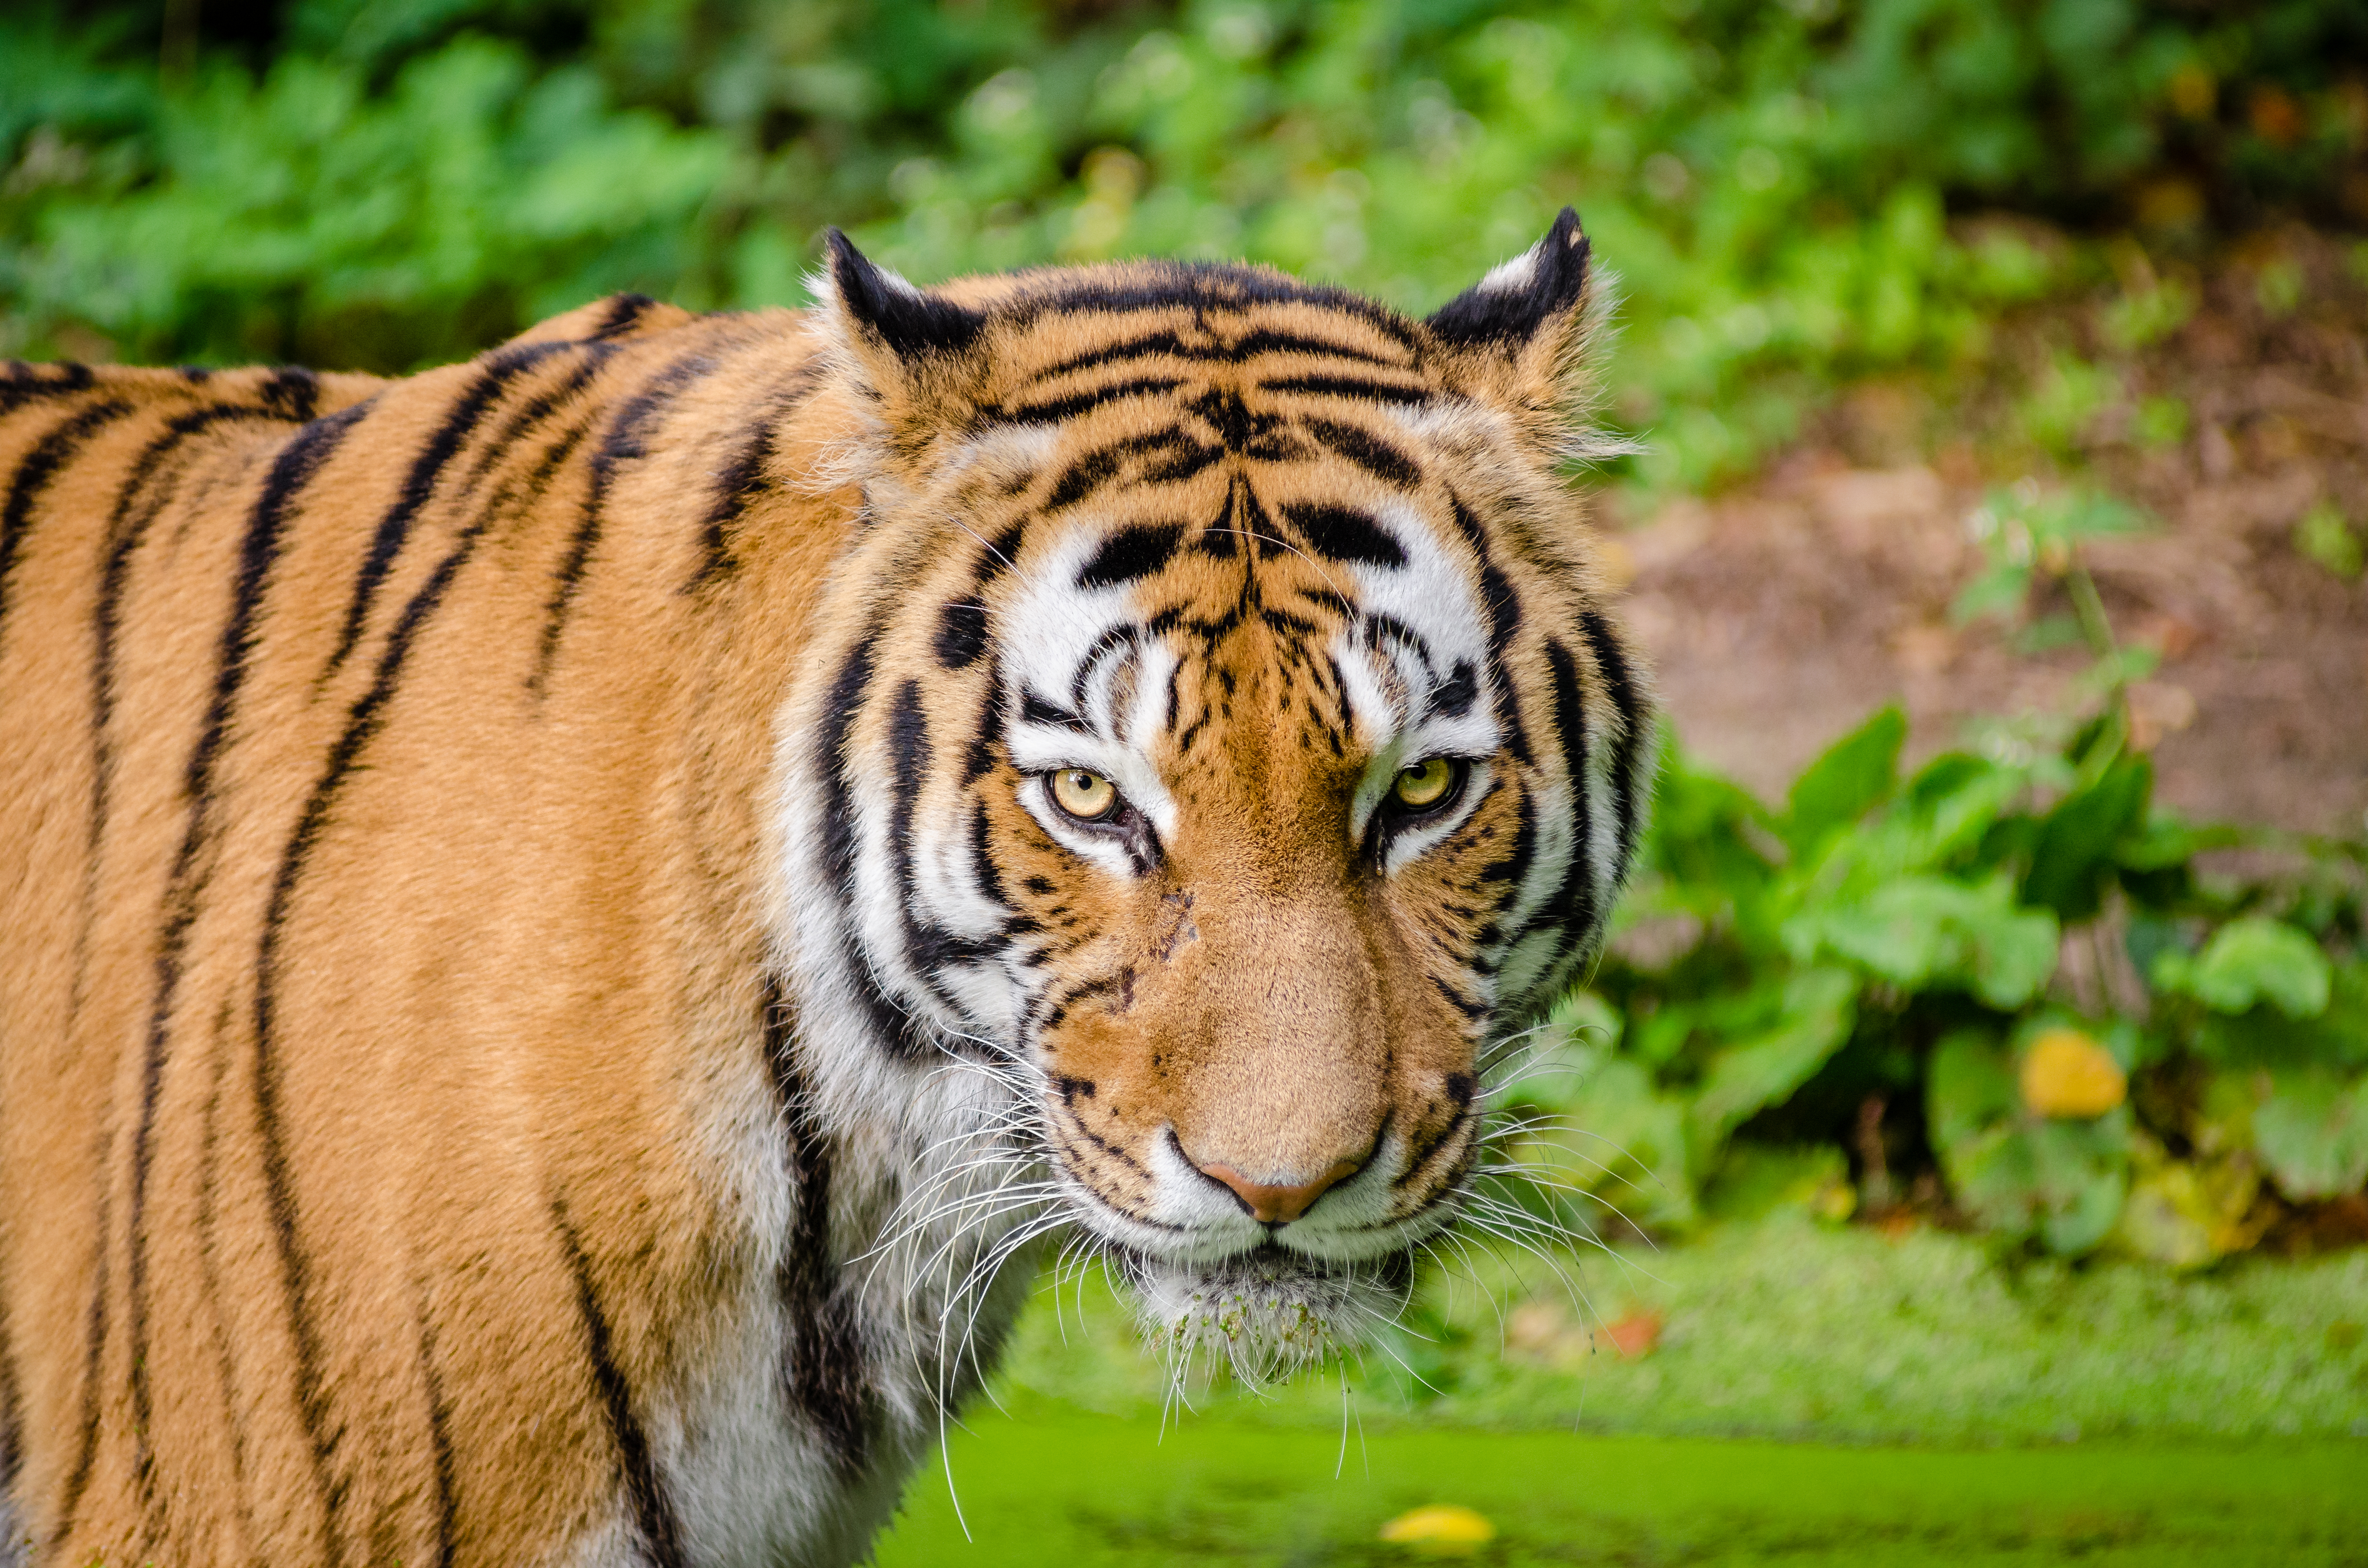 Tiger Pictures Pexels Free Stock Photos